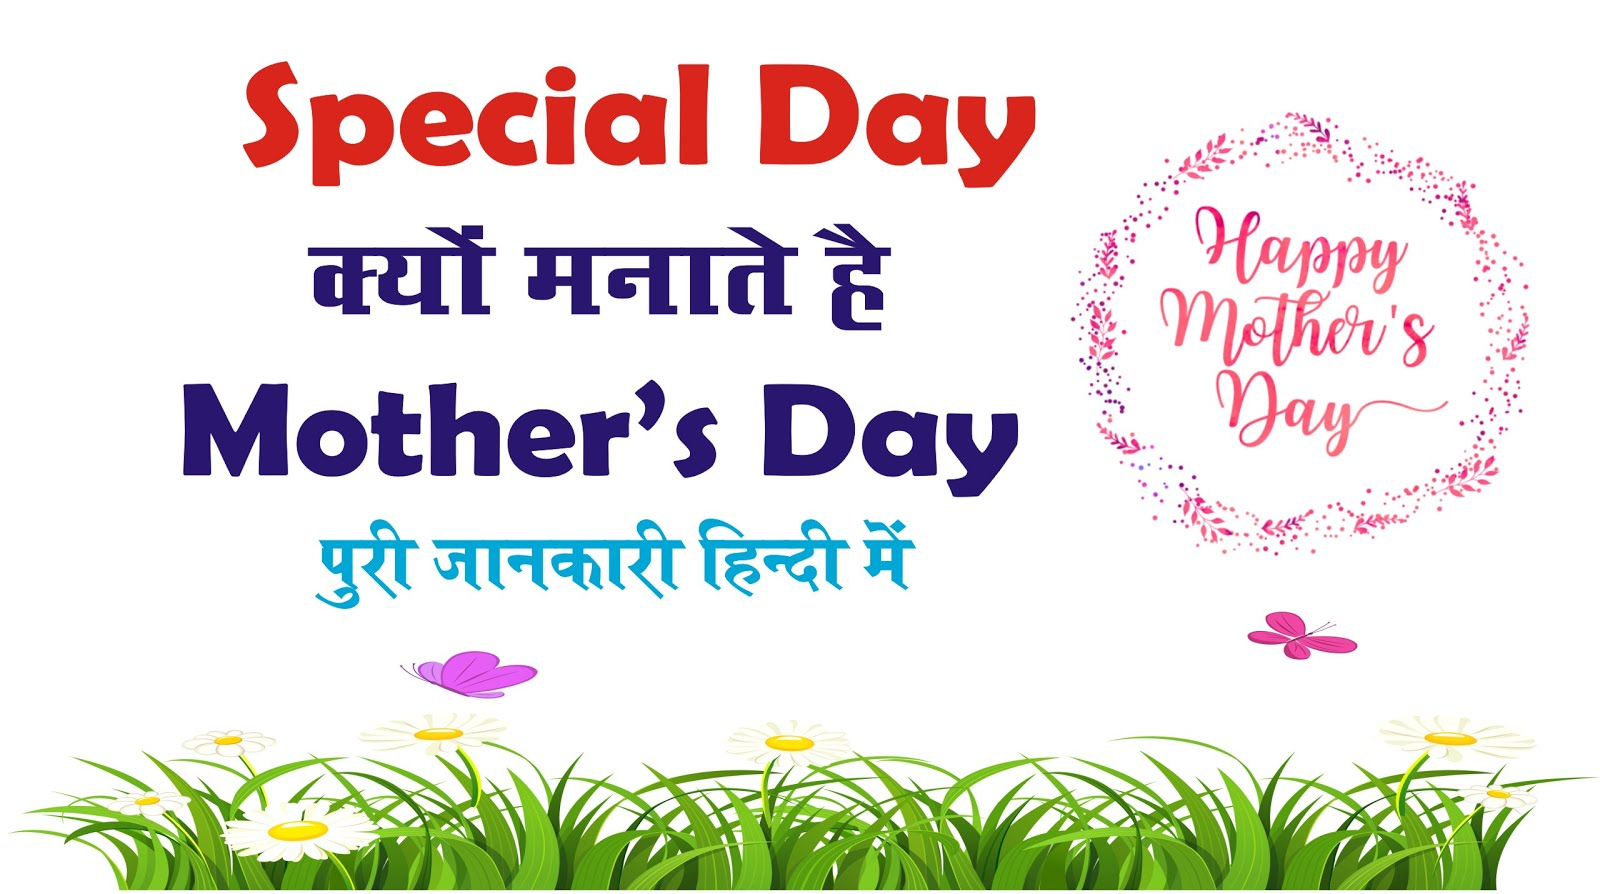 International Mother's Day 12 may